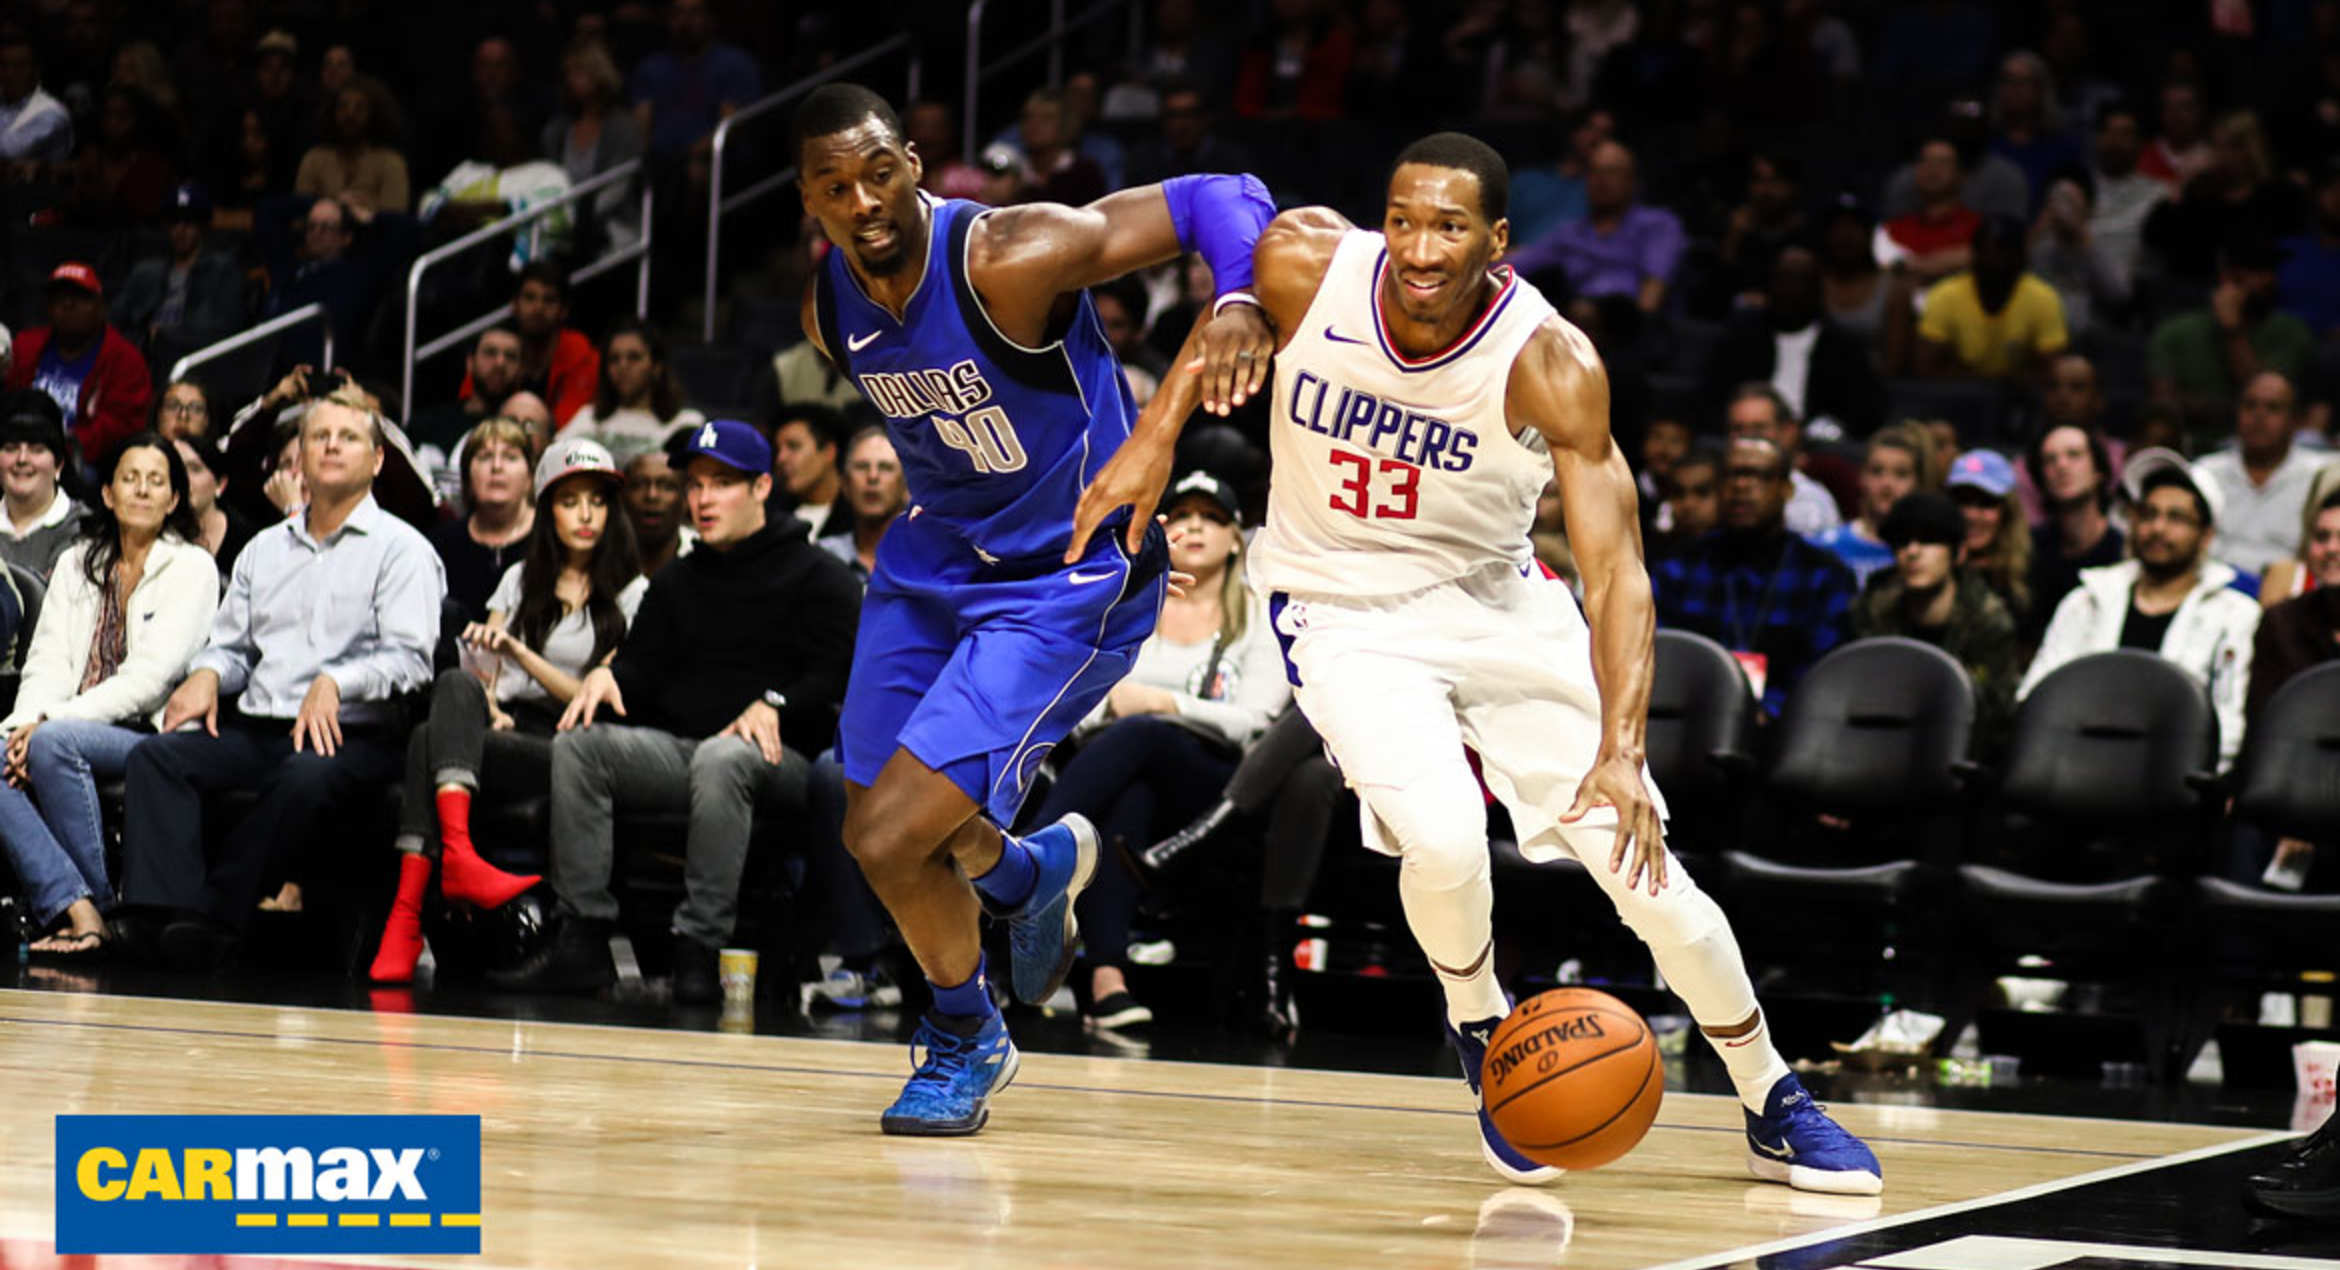 Gameday Report: Clippers vs. Mavericks